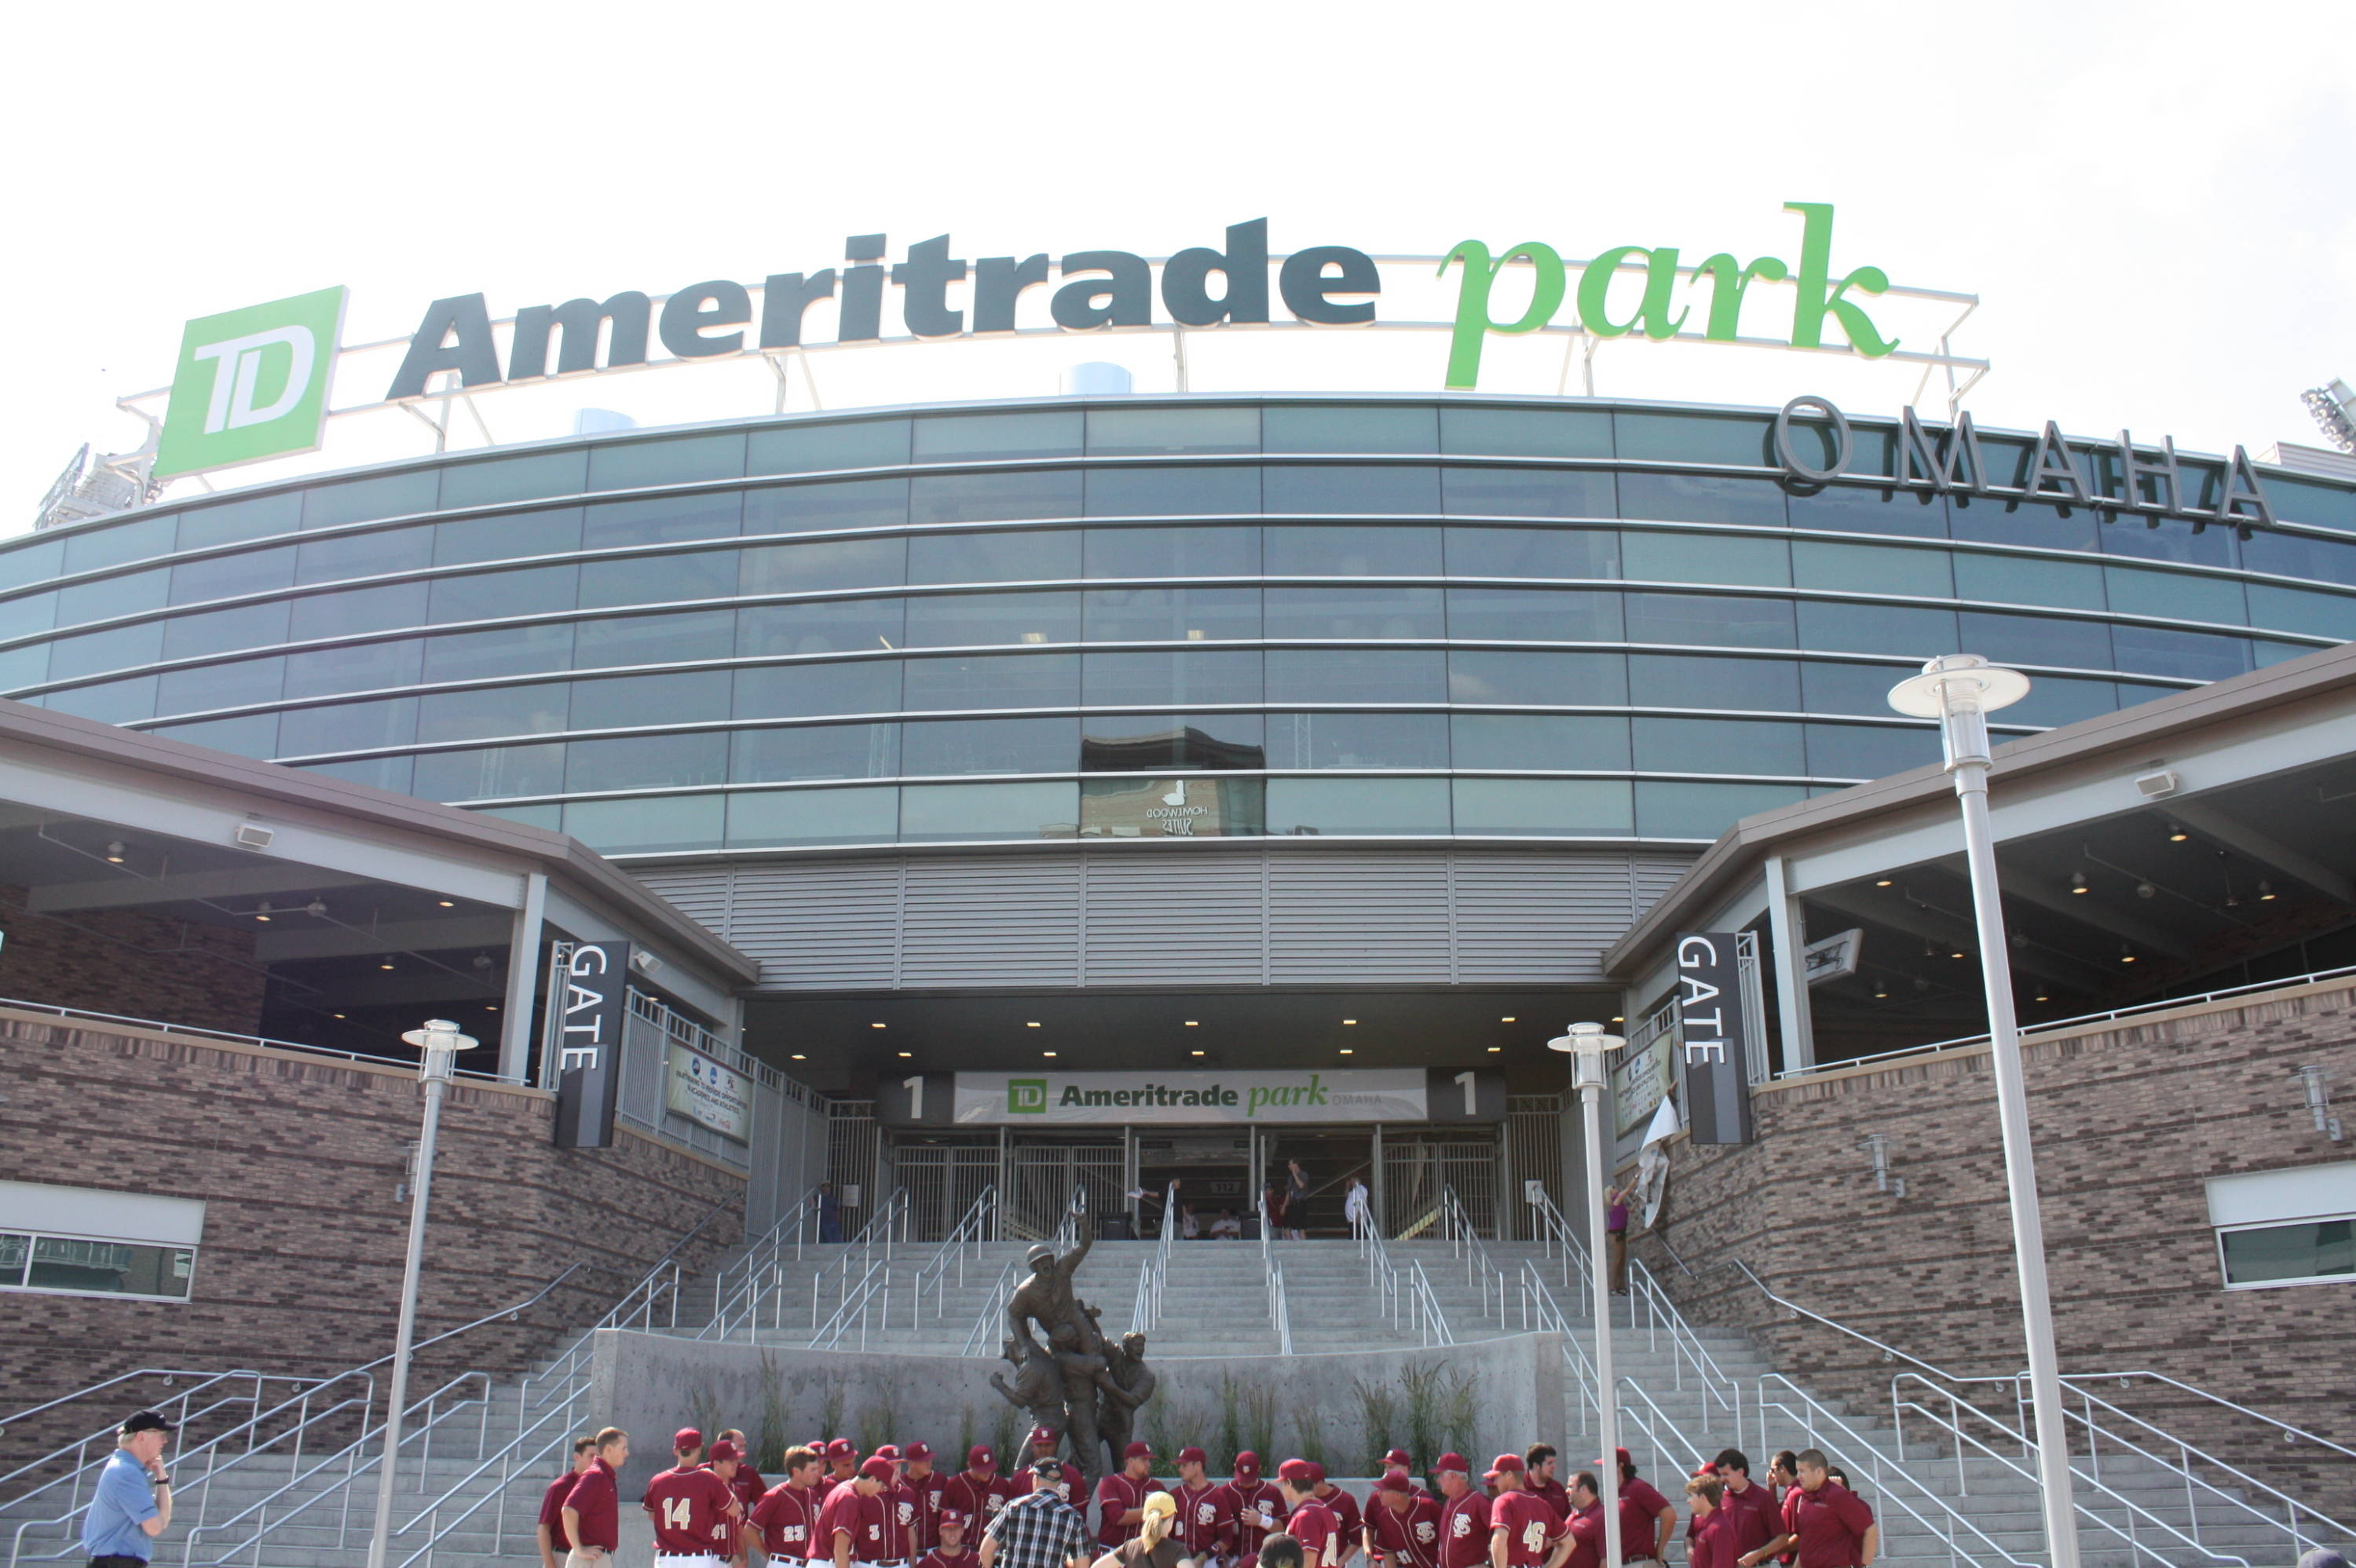 TD Ameritrade Park - home of the College World Series